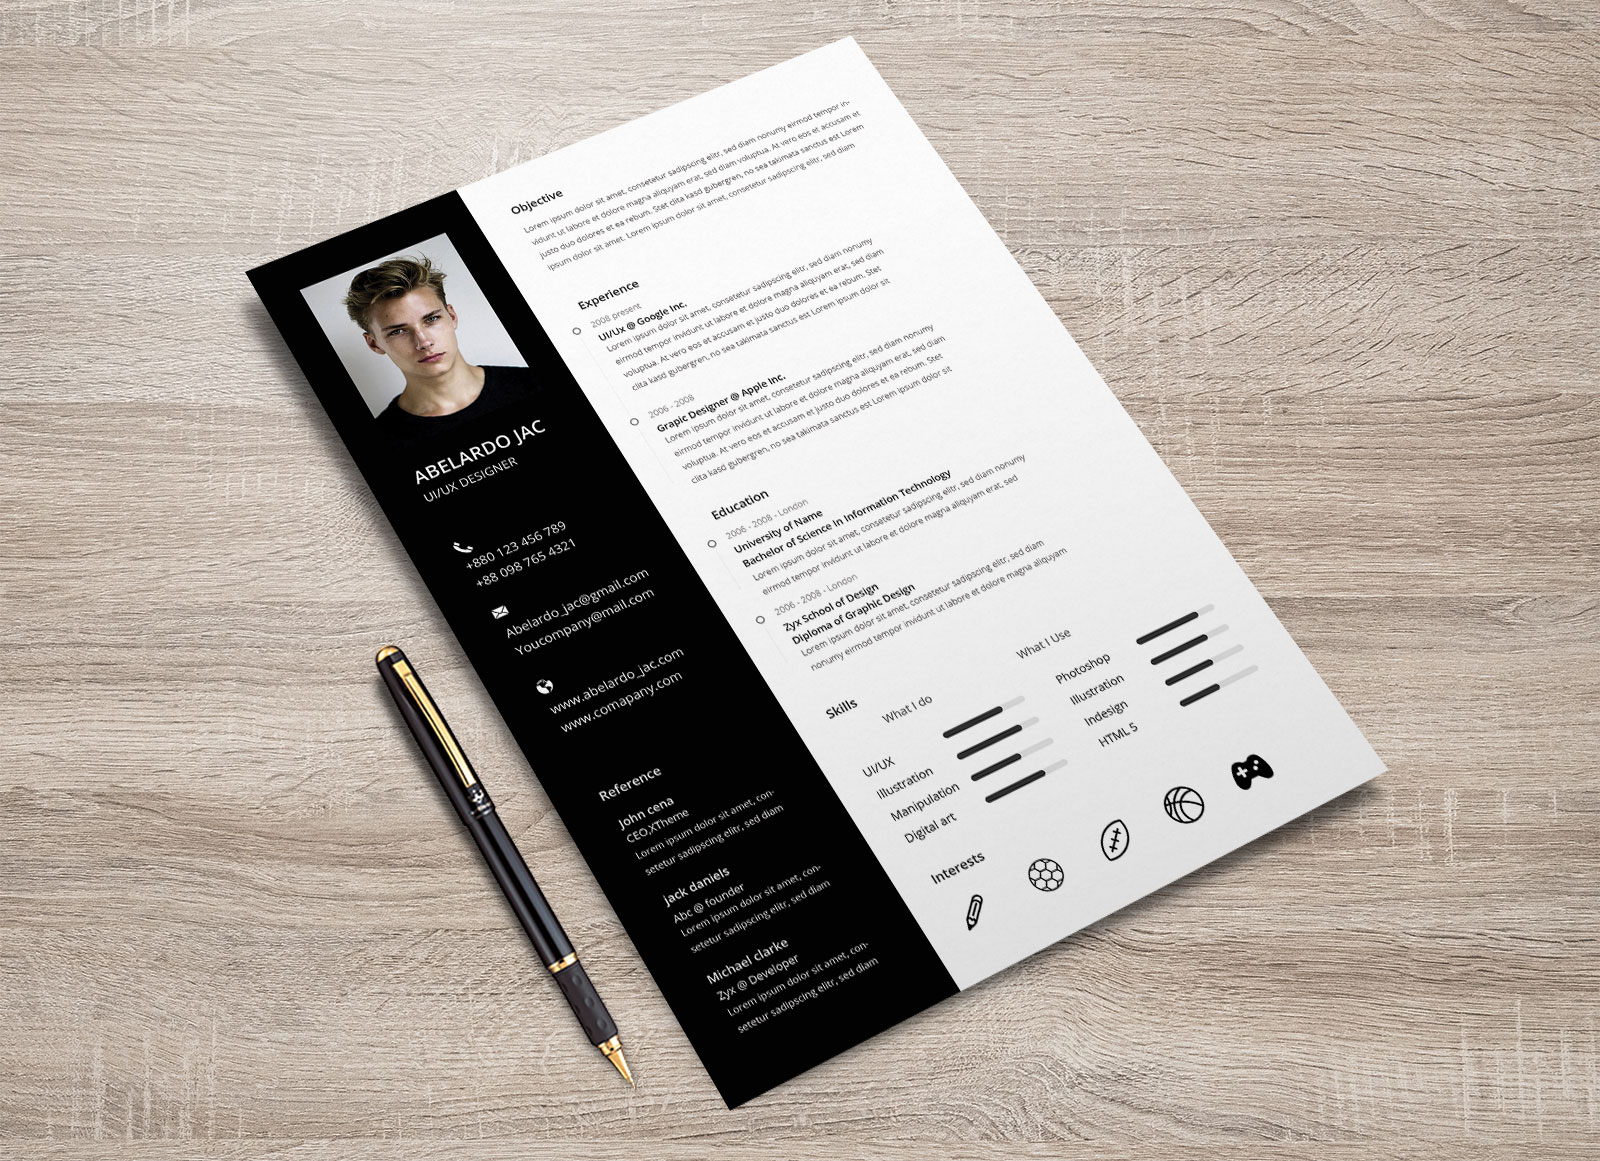 Free-PSD-CV-&-Cover-Letter-Template-Design-for-Web-Designers-Developers